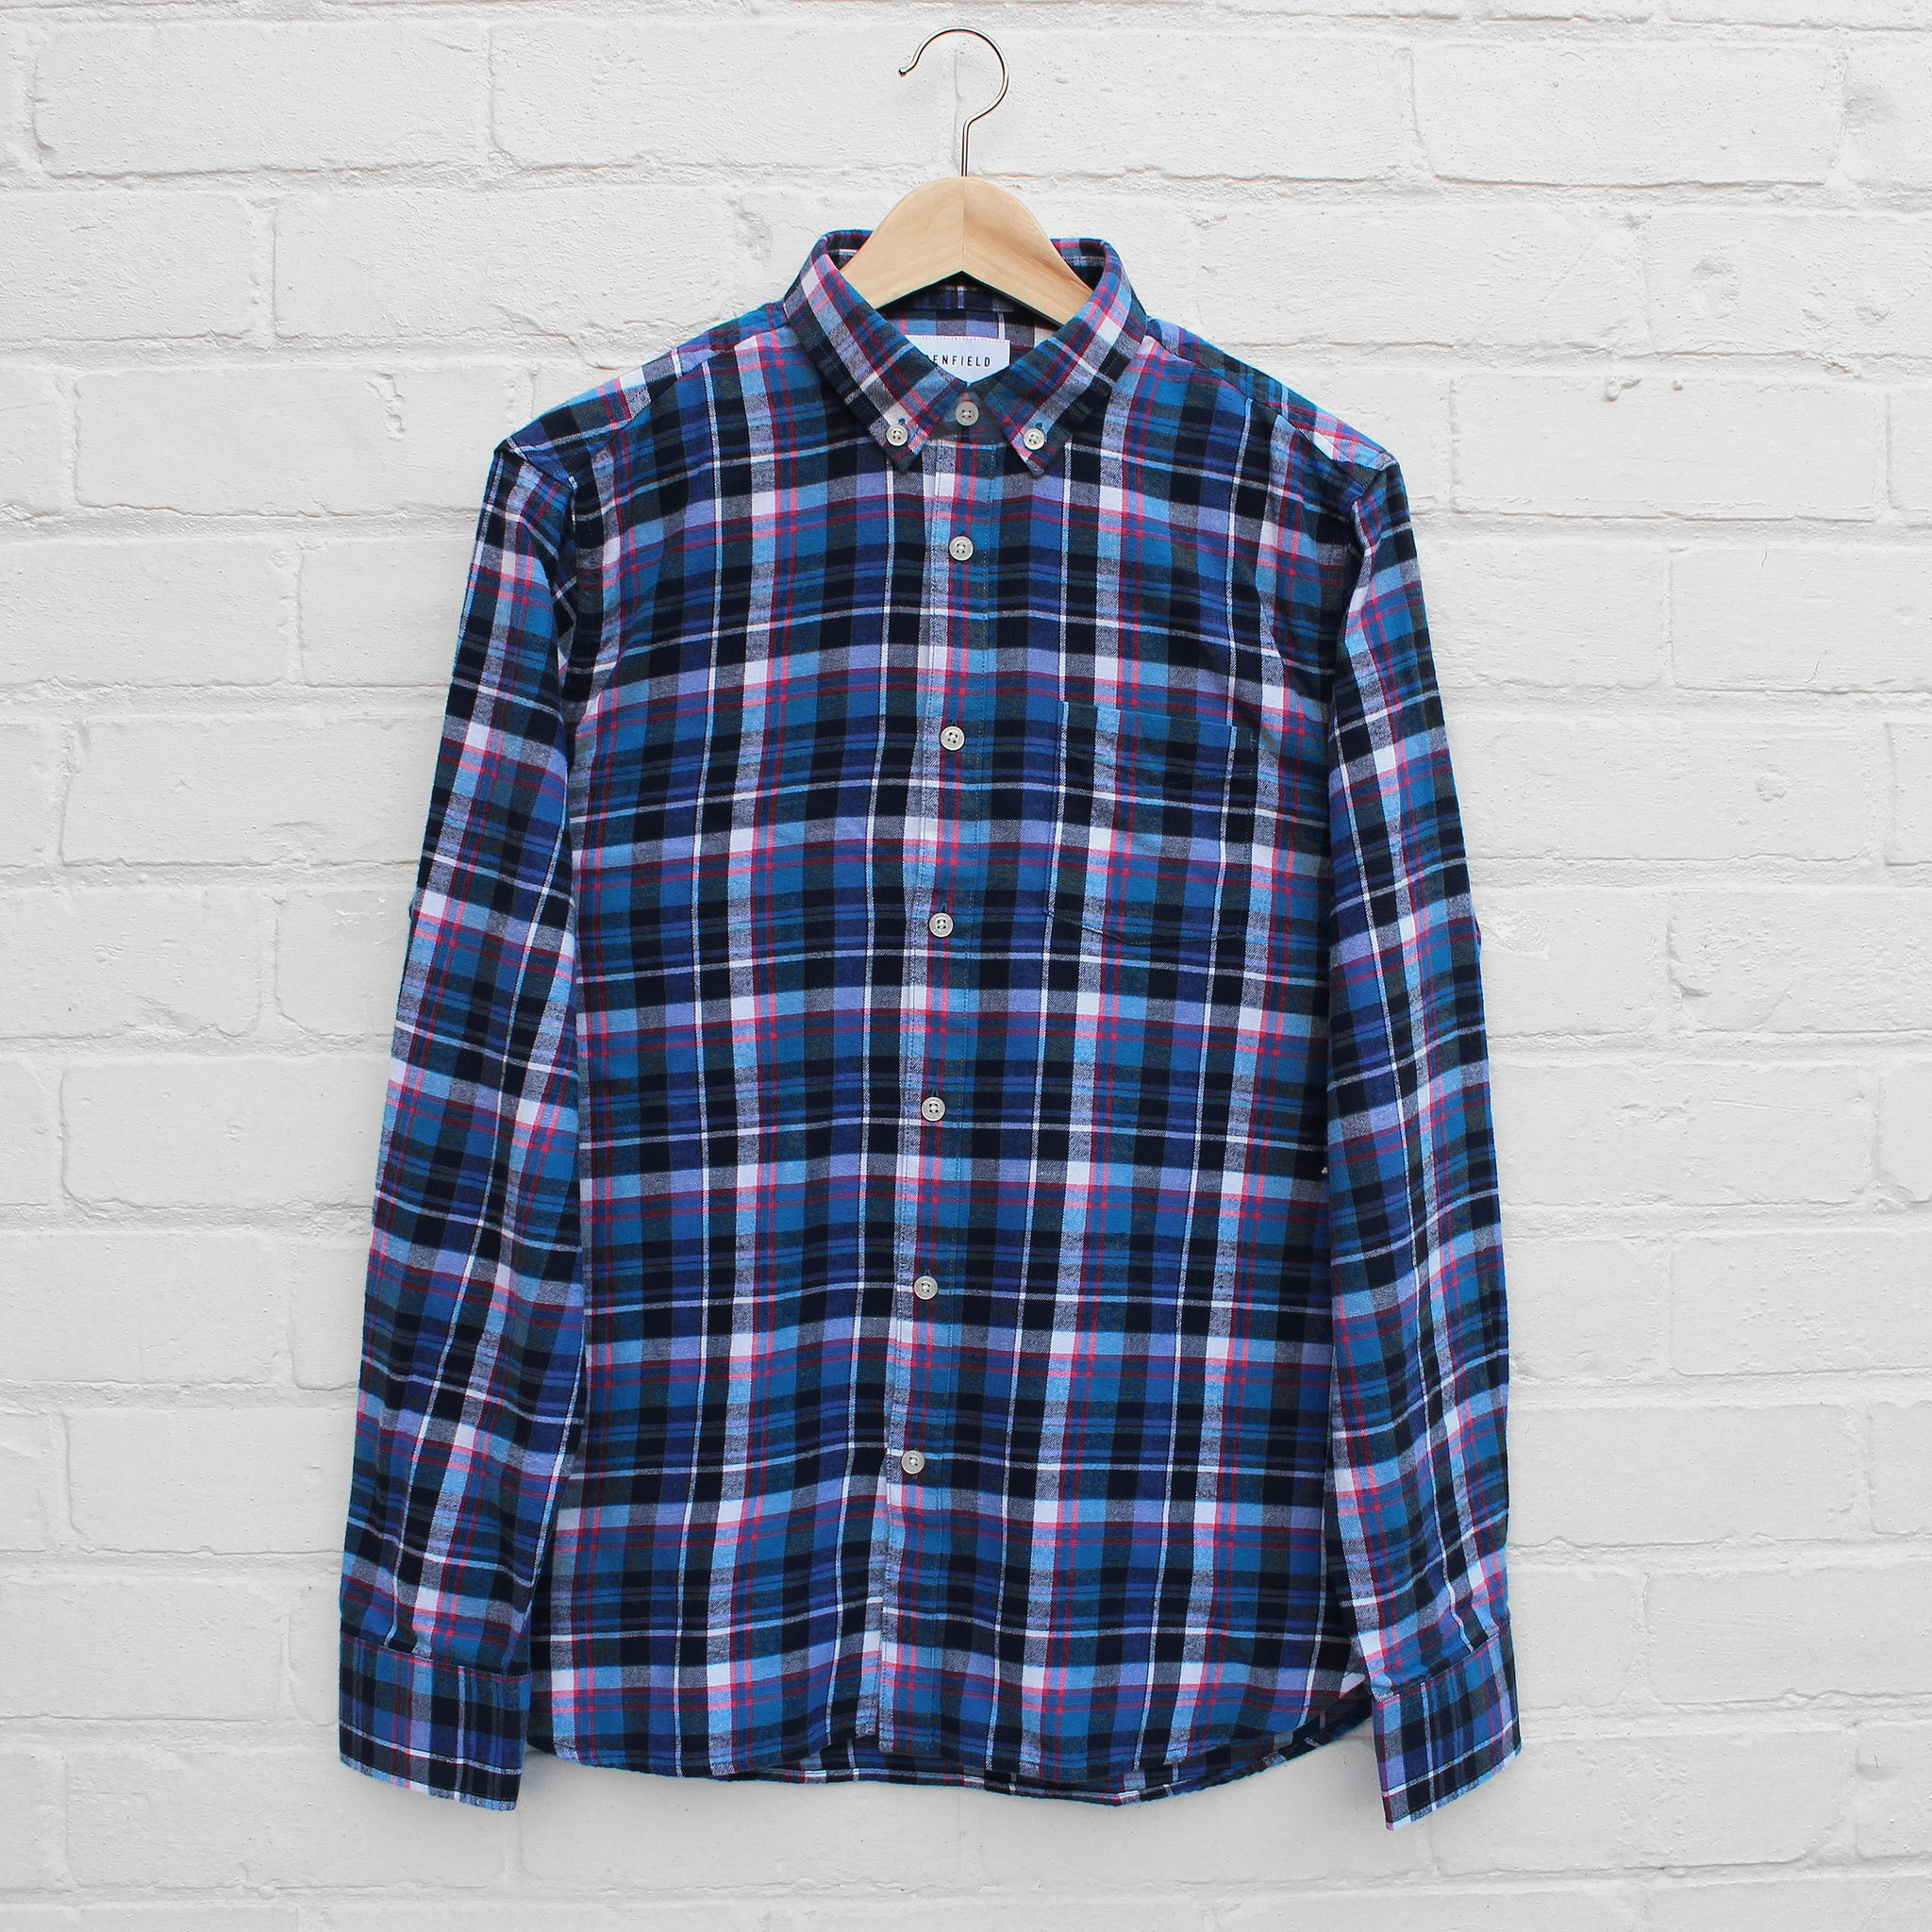 Penfield Barrhead Shirt Blue